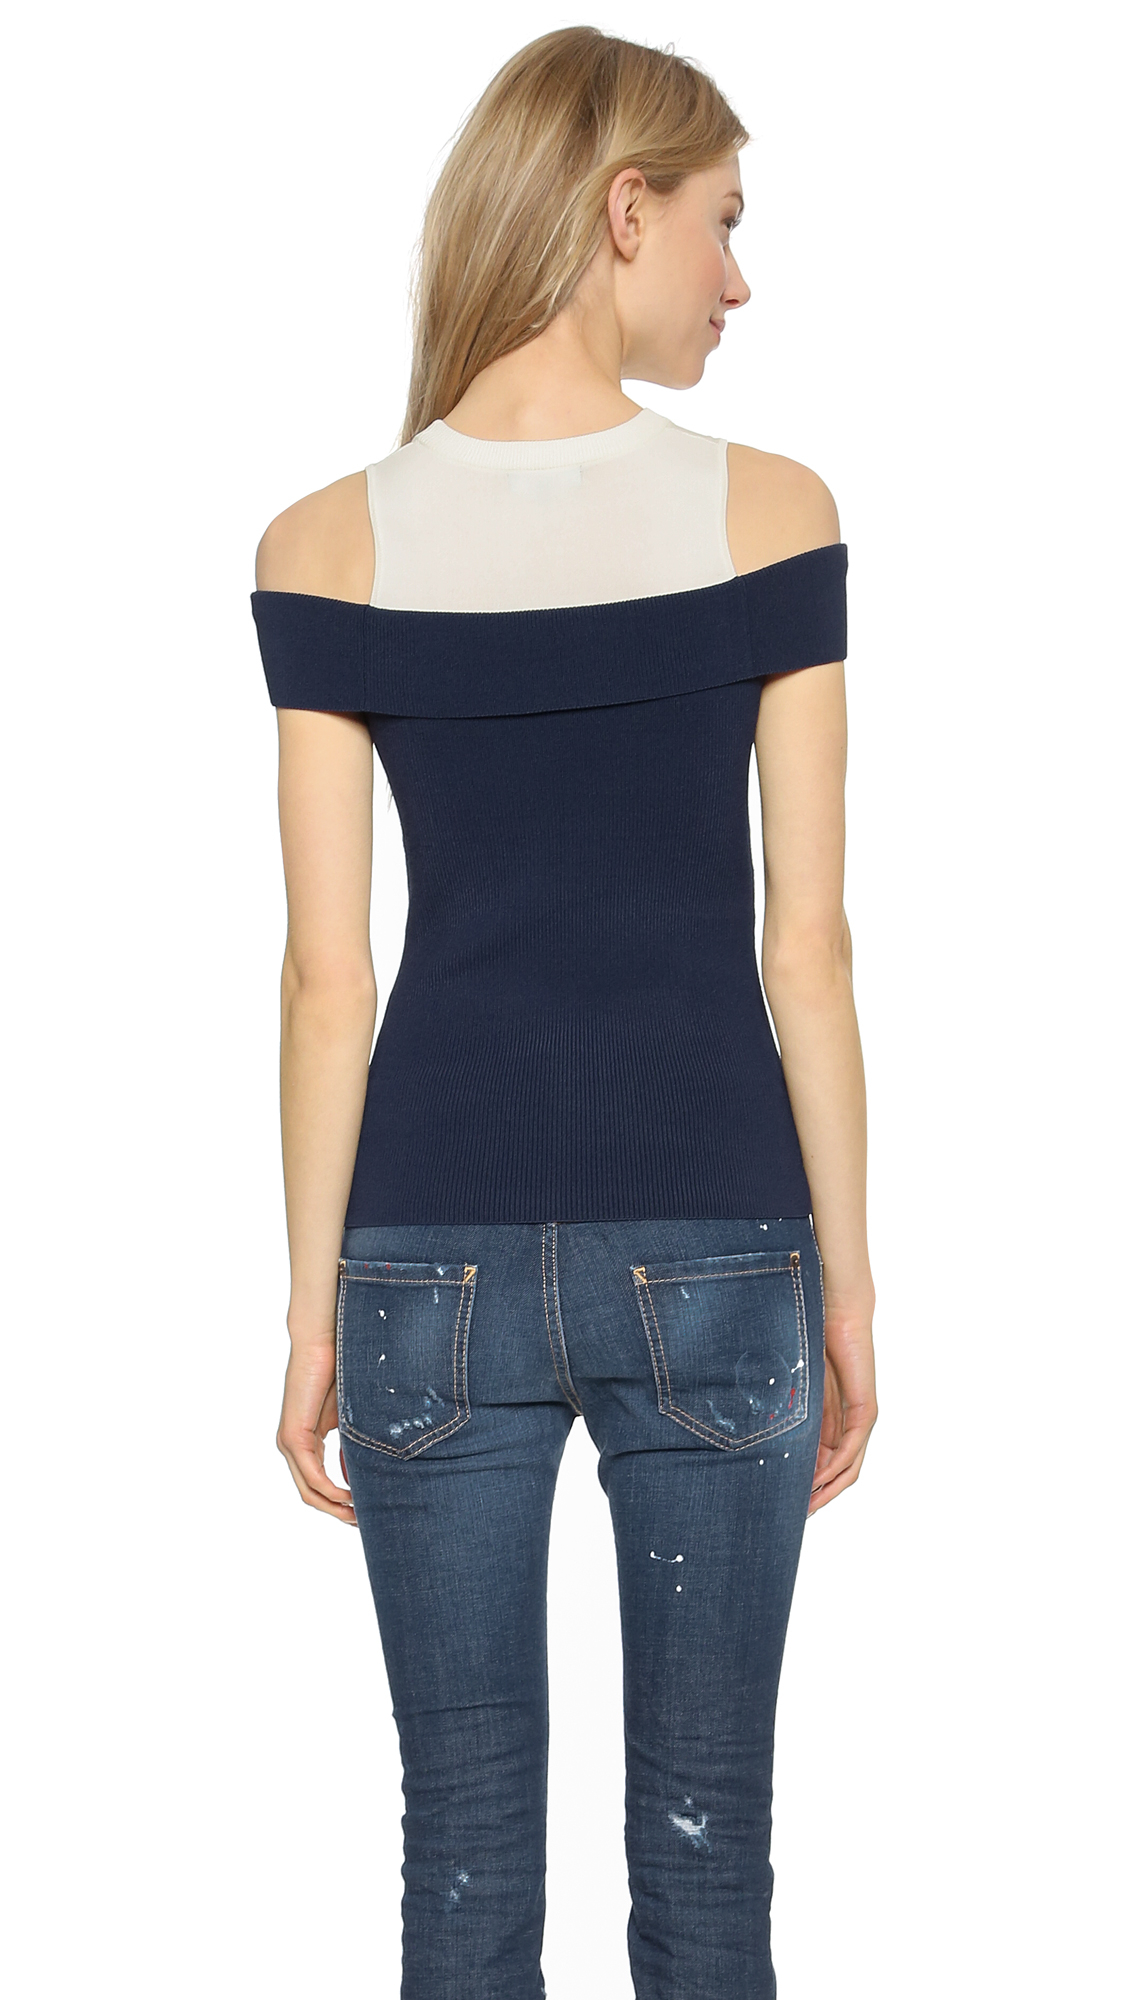 Opening ceremony Veronica Ribbed Off Shoulder Top - Navy in Blue ...